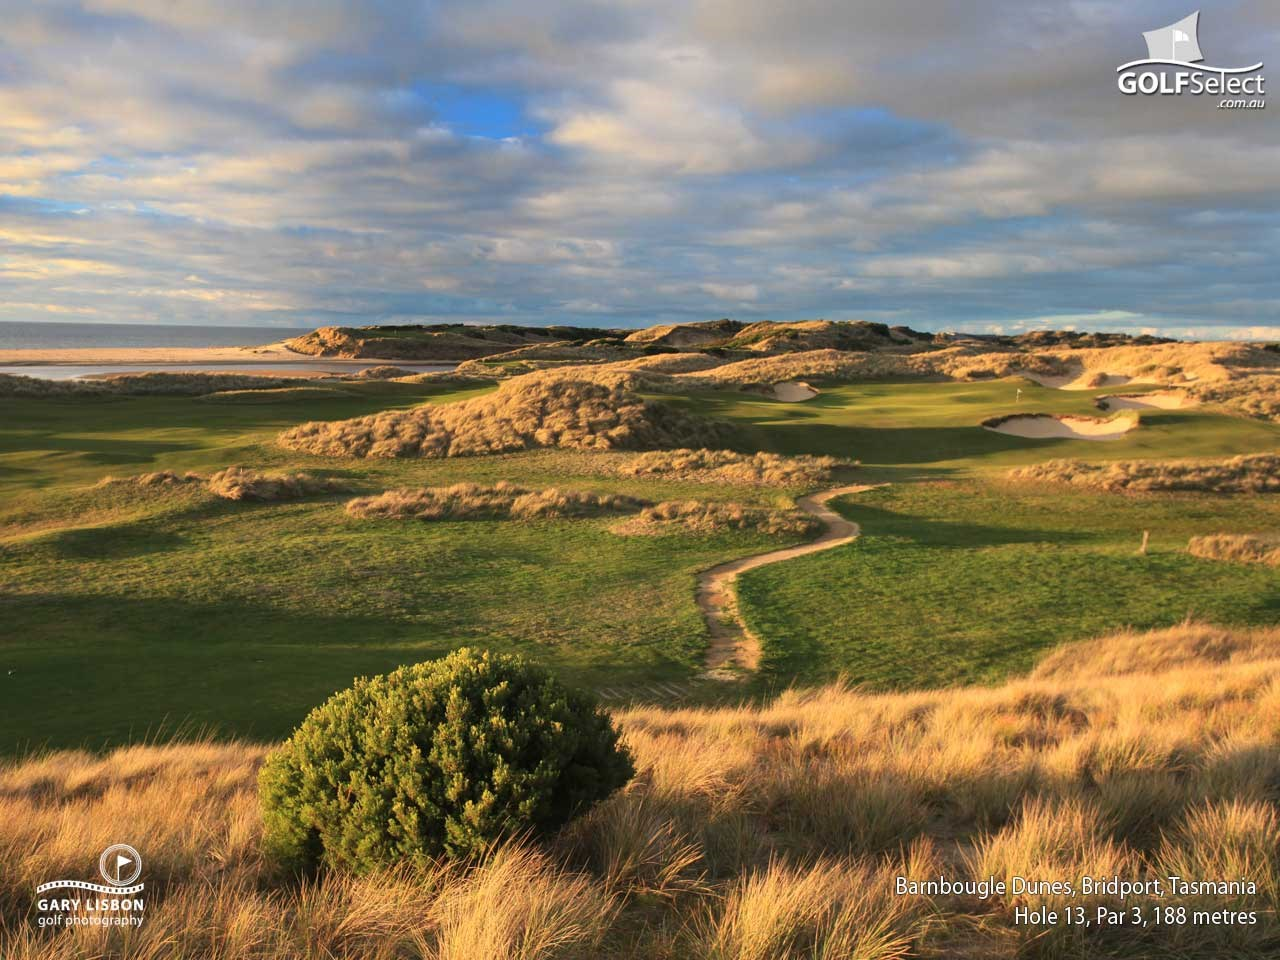 Barnbougle Dunes Golf Links Hole 13, Par 3, 188 metres